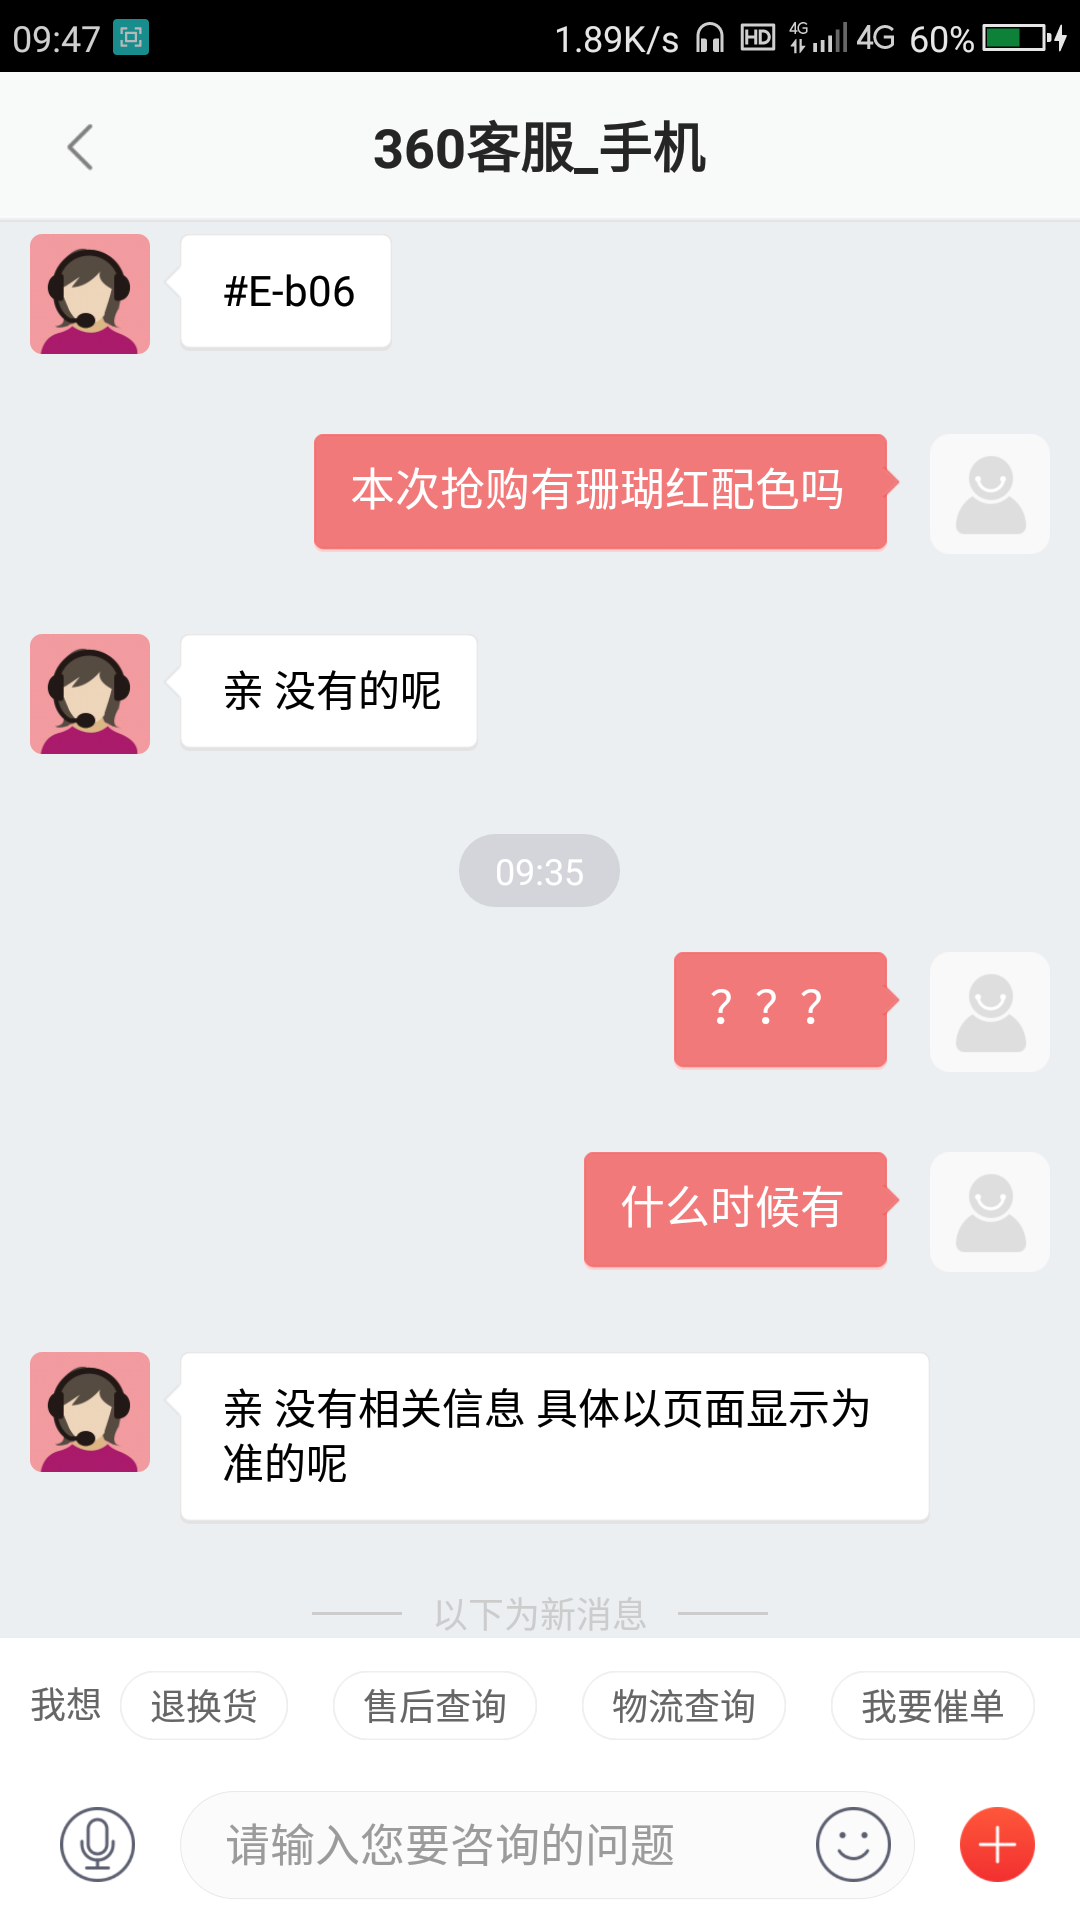 Screenshot_2018-08-23-09-47-35.png